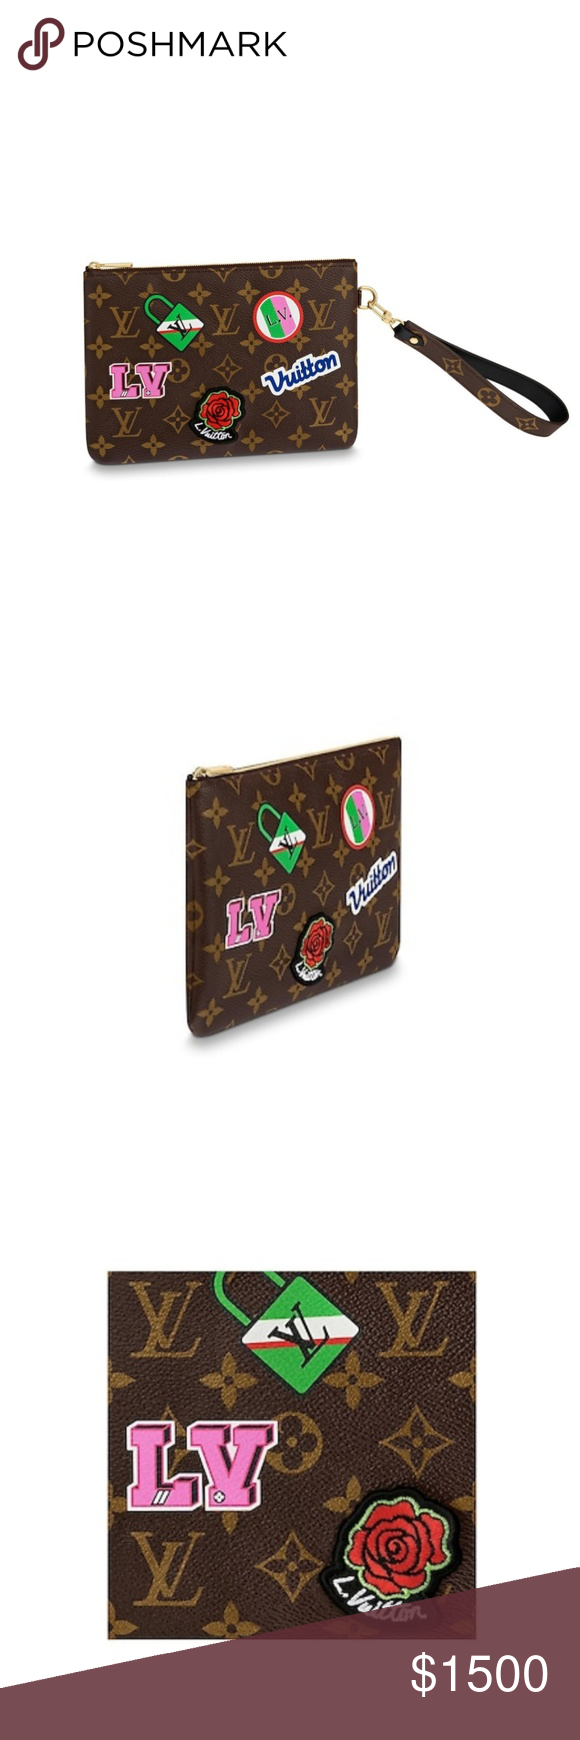 e1f66a1391a Louis vuitton city wristlet limited edition M63447 Brand new in box ...